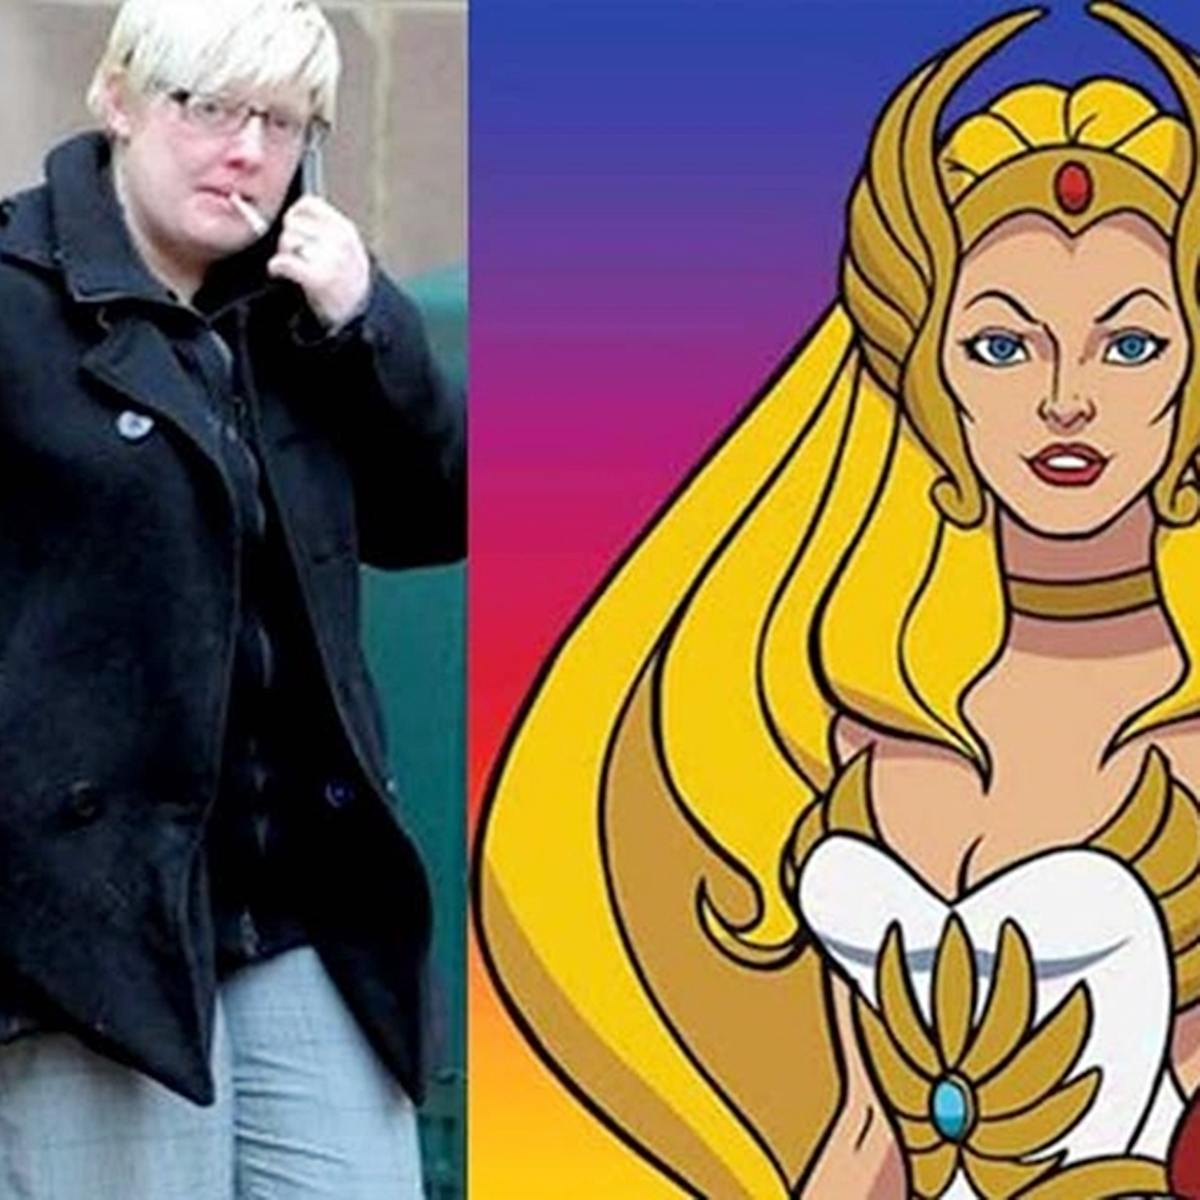 SHE RA2 15 Facts About 80s Cartoons That Will Ruin Your Childhood